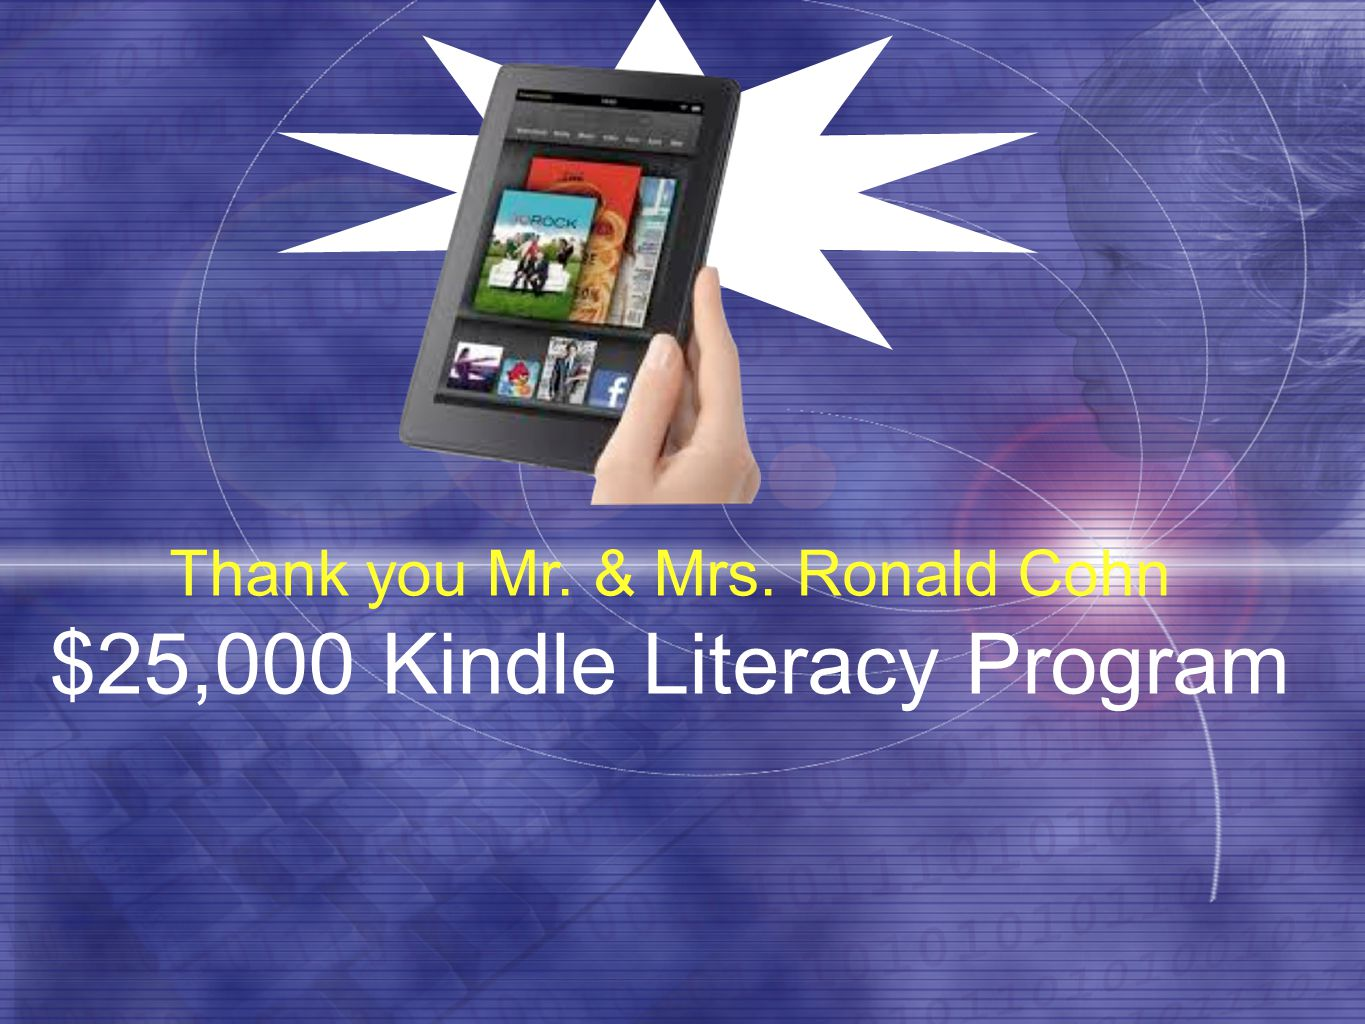 Thank you Mr. & Mrs. Ronald Cohn $25,000 Kindle Literacy Program